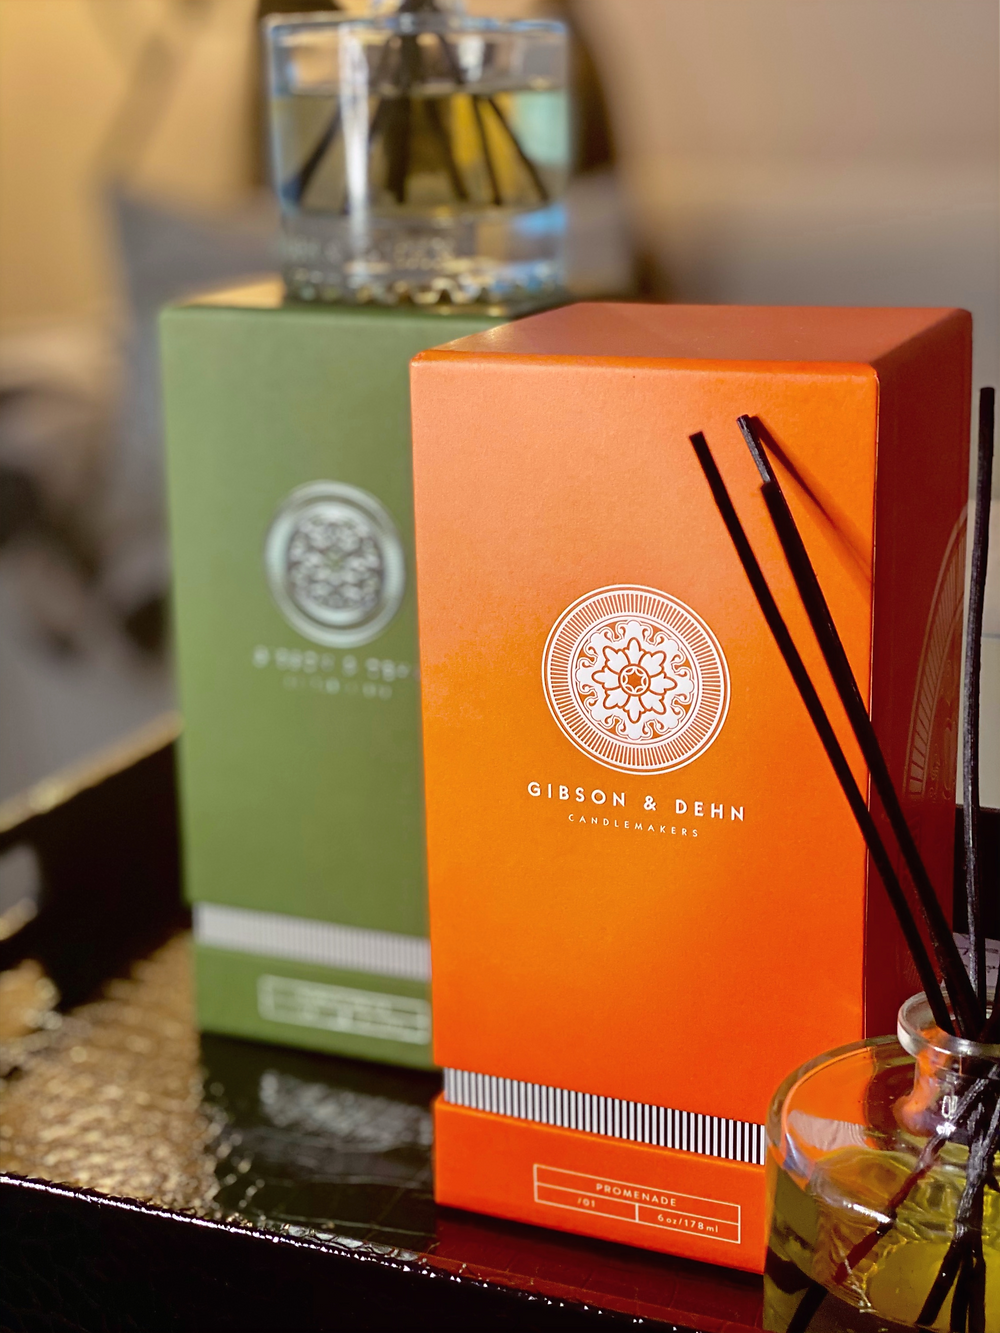 Gibson and Dehn Promenade and Norway Spruce Oil Diffusers